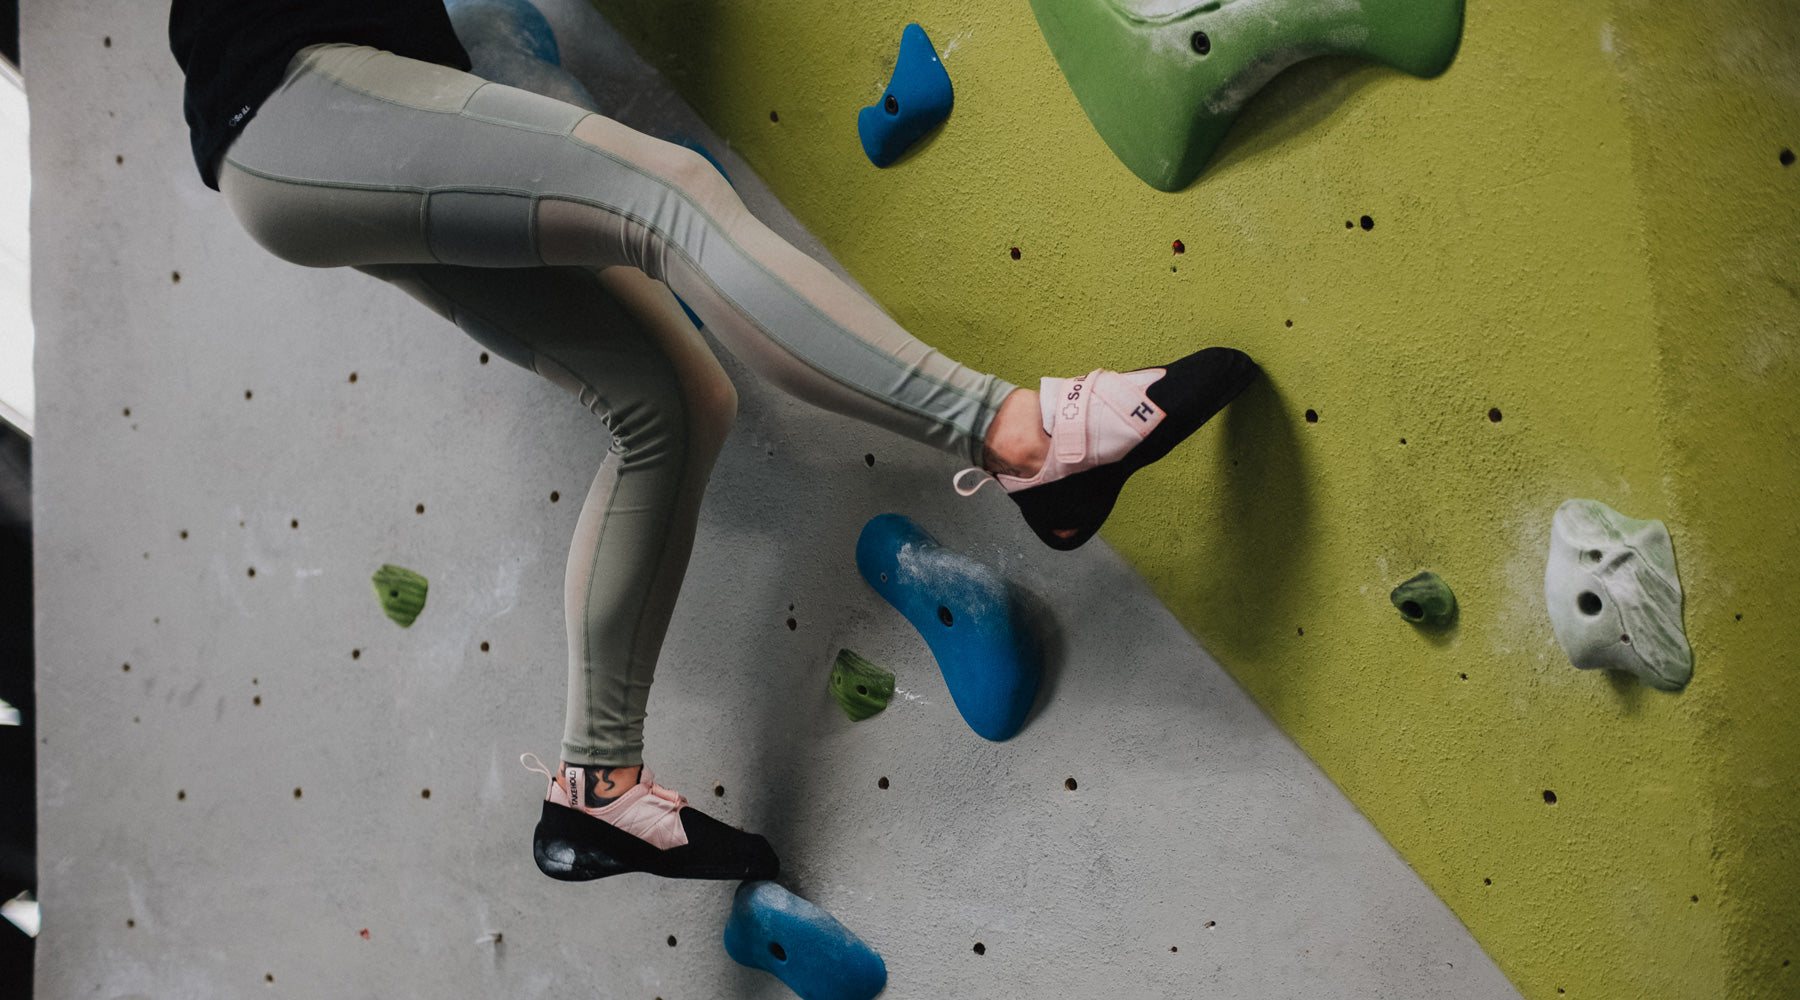 bouldering in So iLL ladies green mesh leggings while wearing pink free range lv so ill climbing shoes